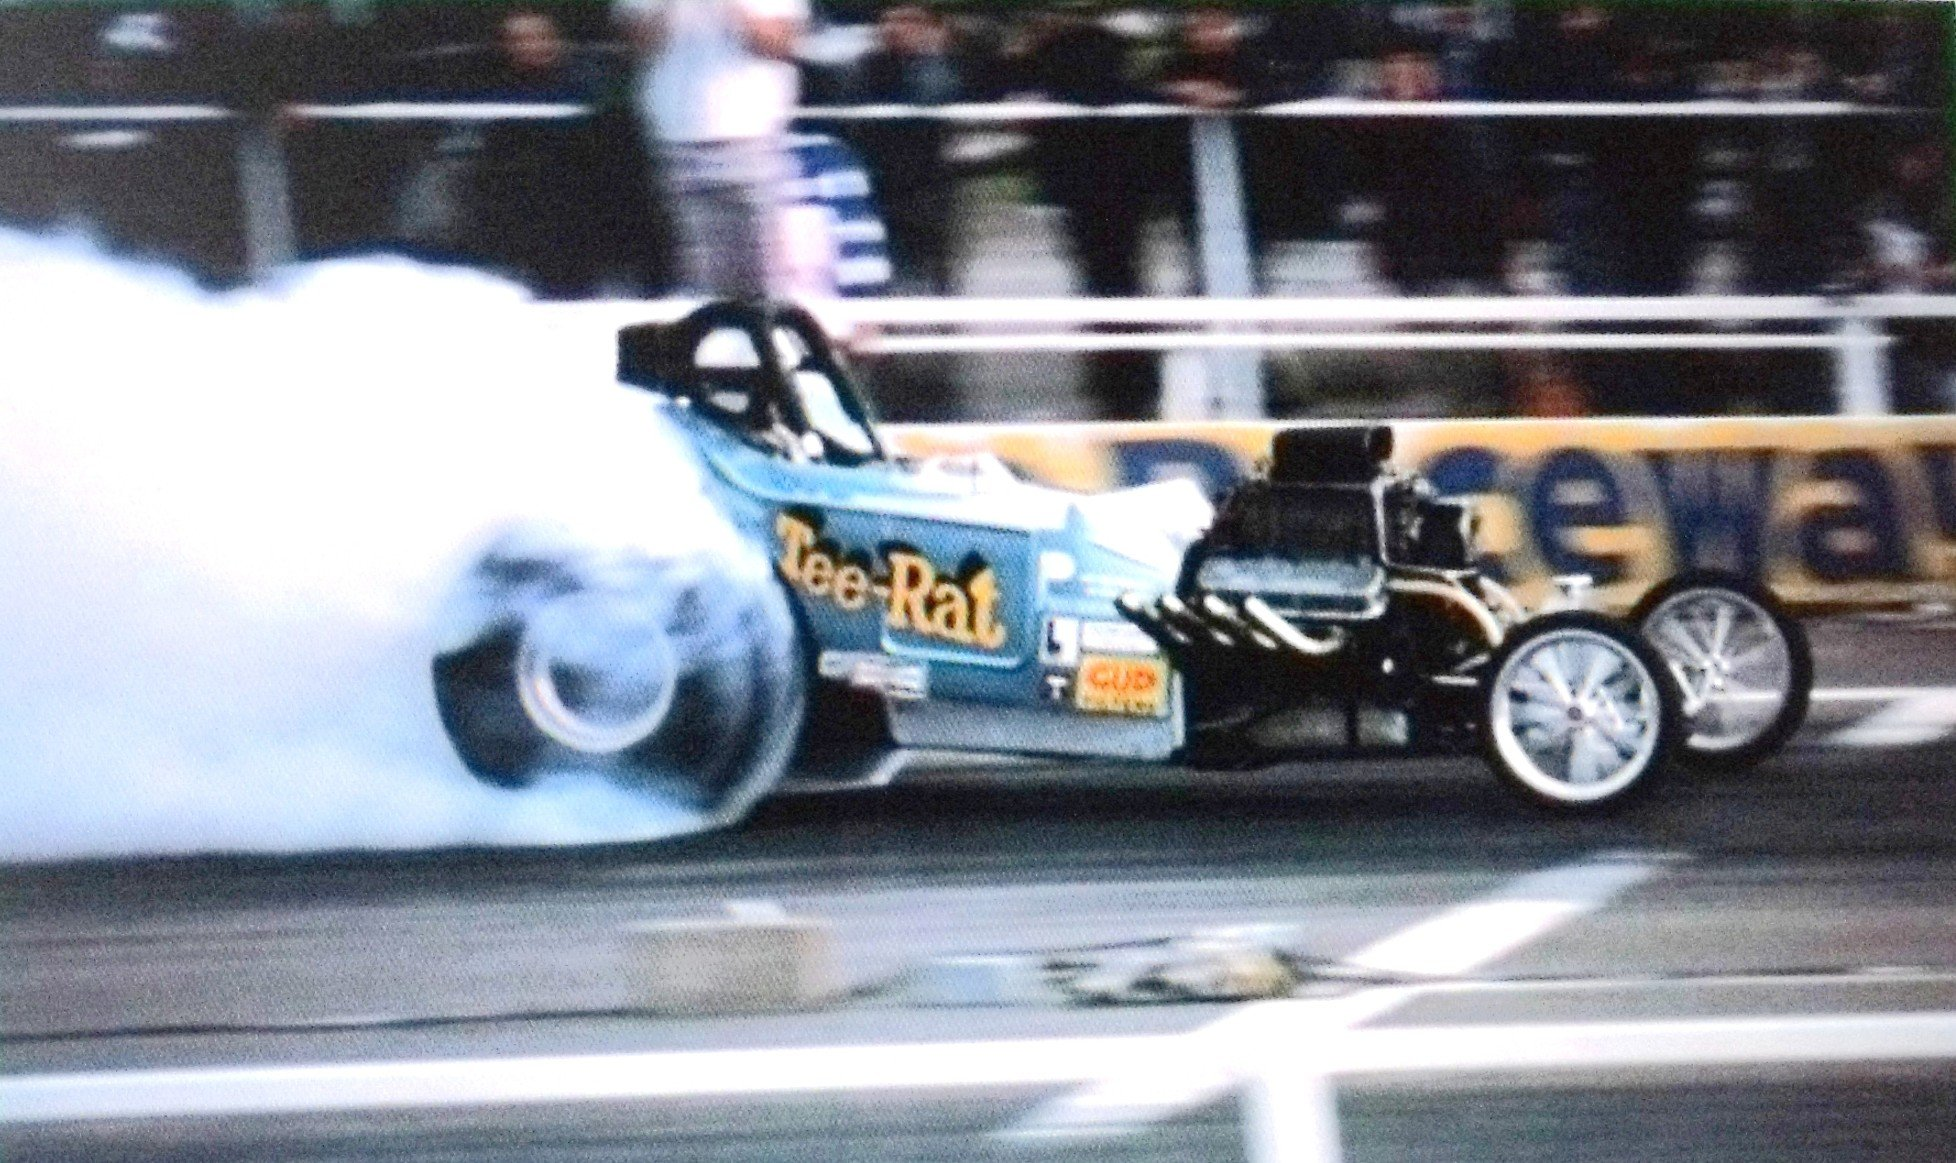 70s Dragsters http://www.dragzine.com/news/hump-day-holeshot-vintage-70s-stockers-floppers-and-dragsters/